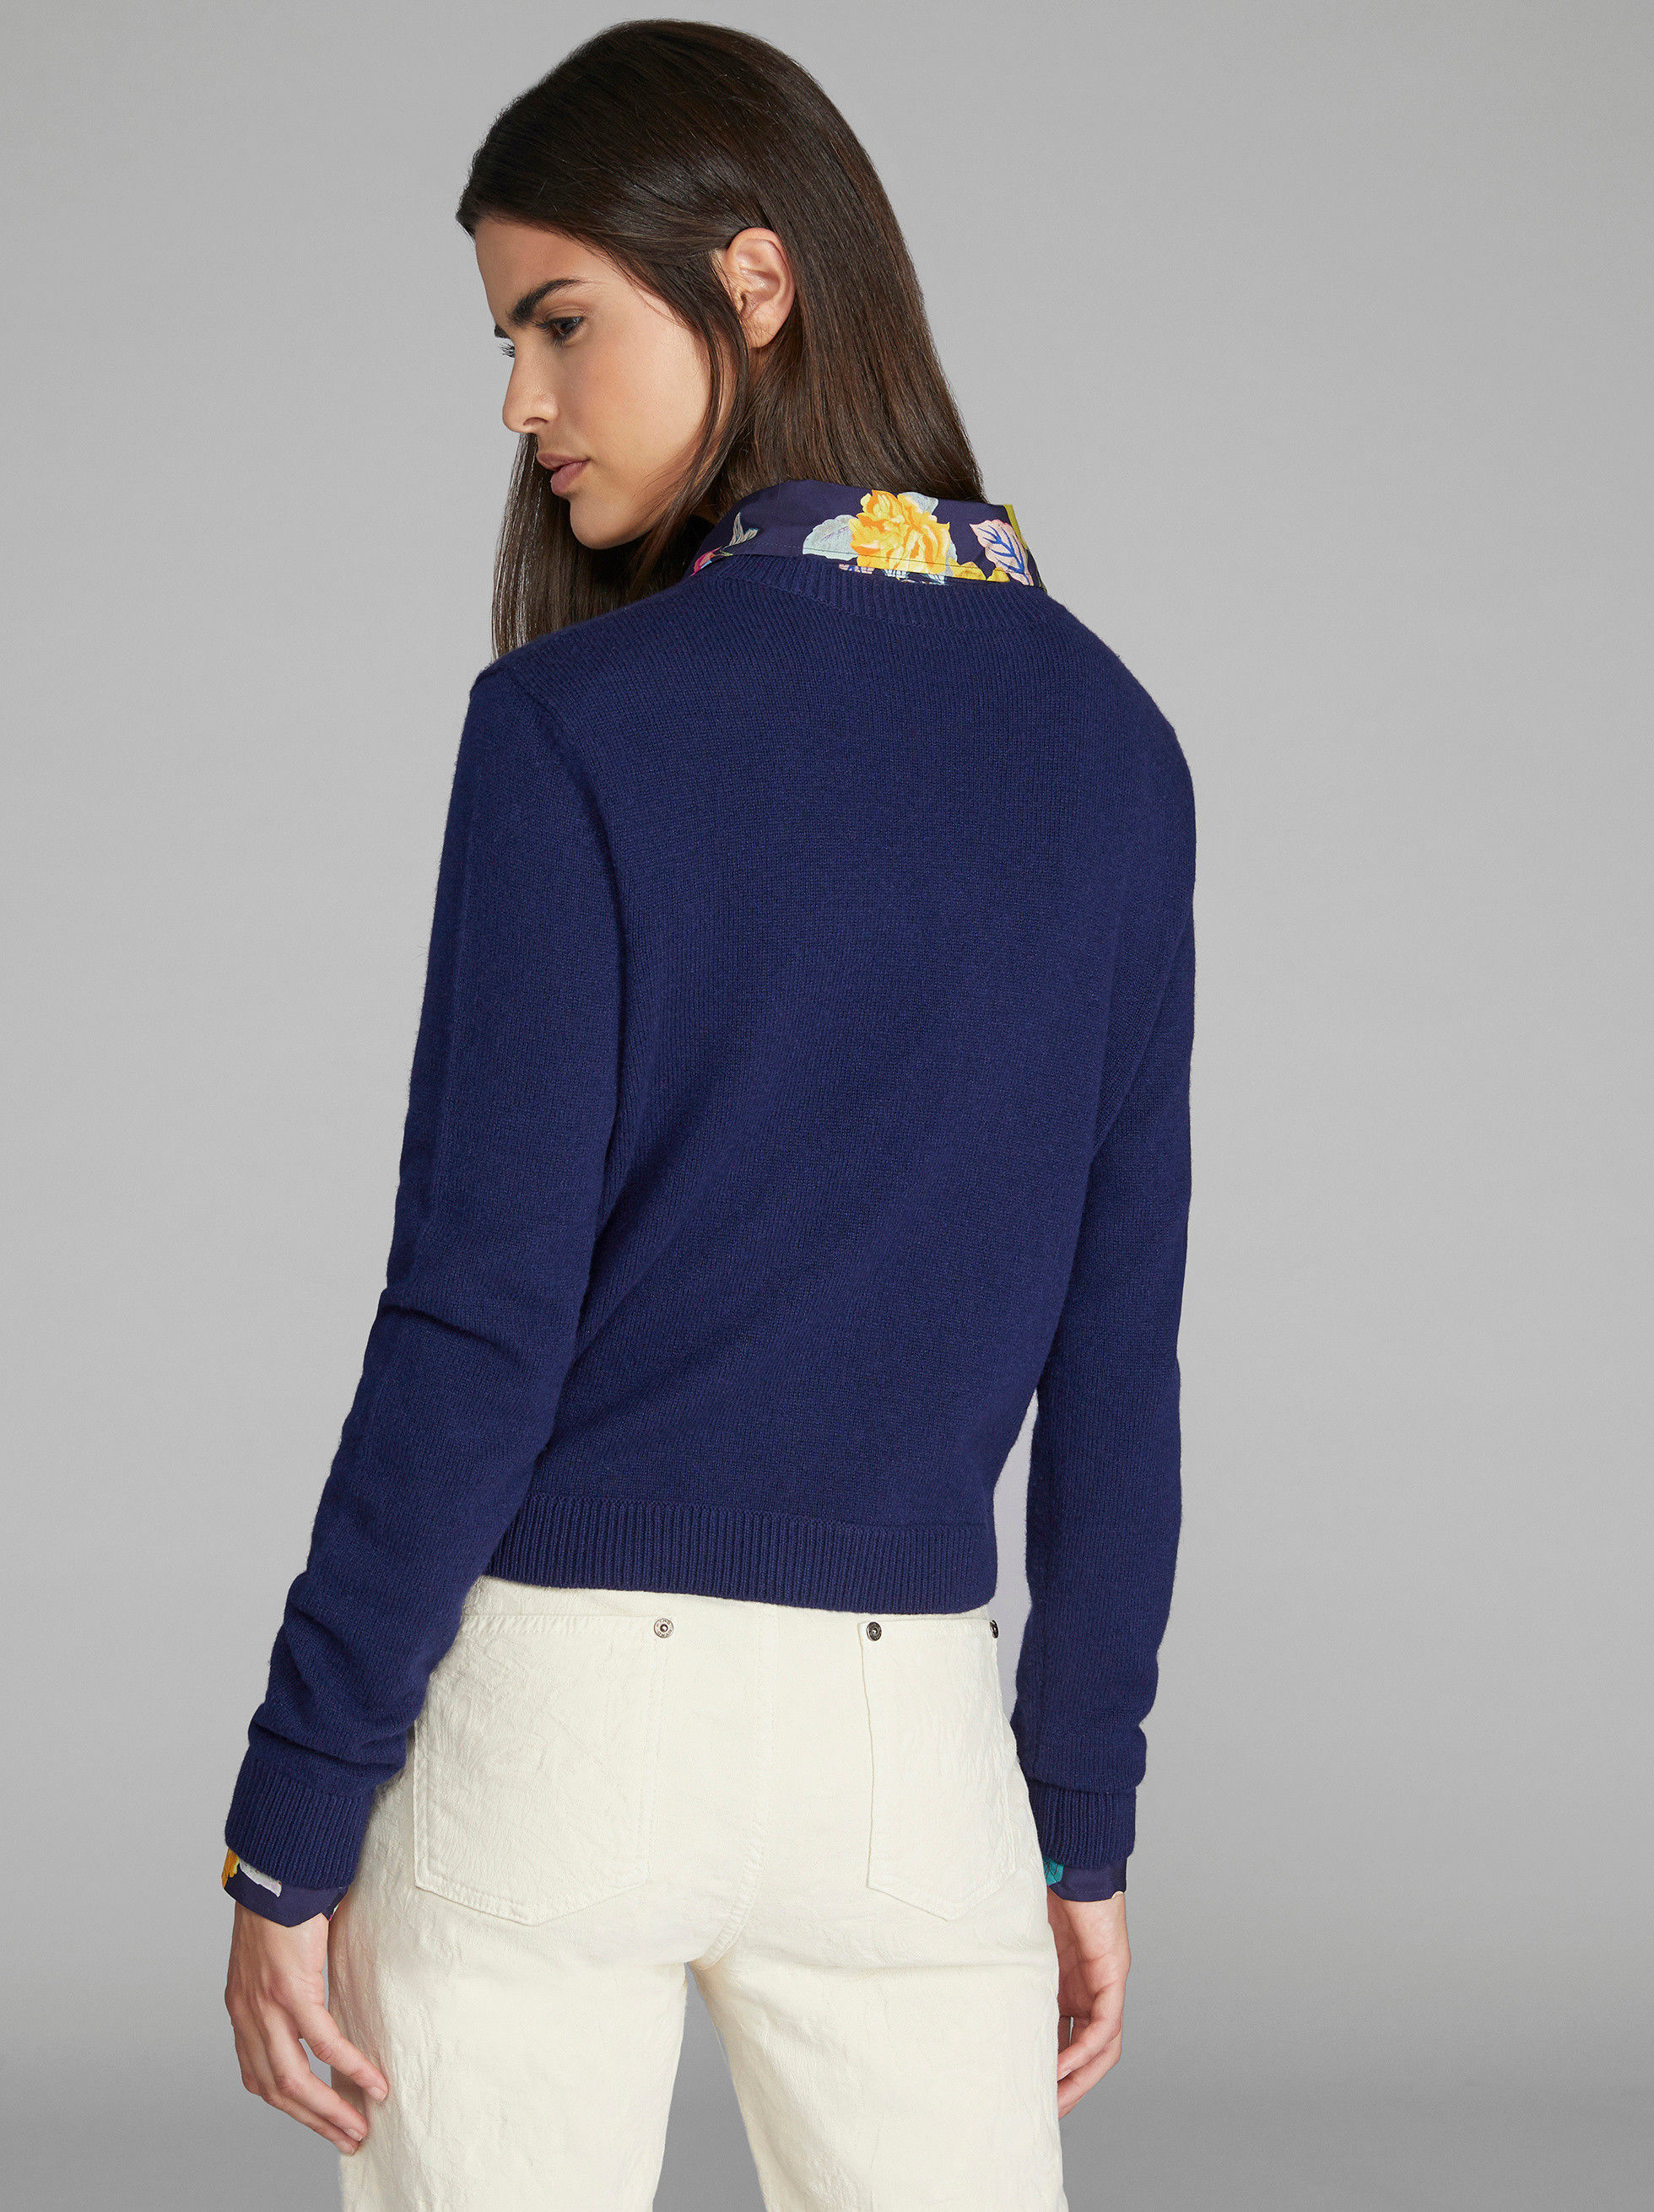 FLORAL EMBROIDERED JUMPER